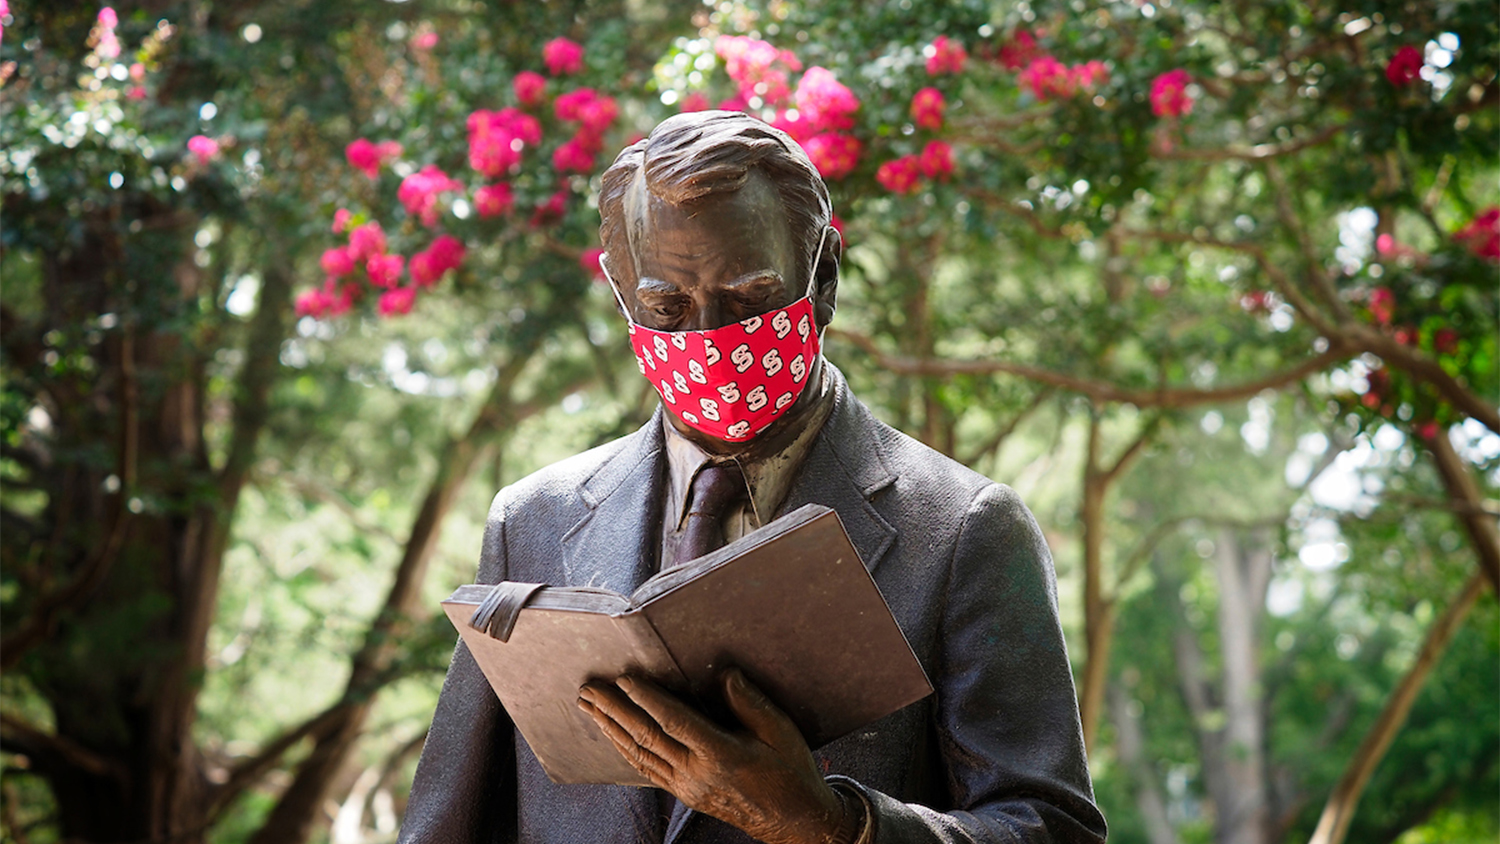 Statue of a professor in a red mask reading a book